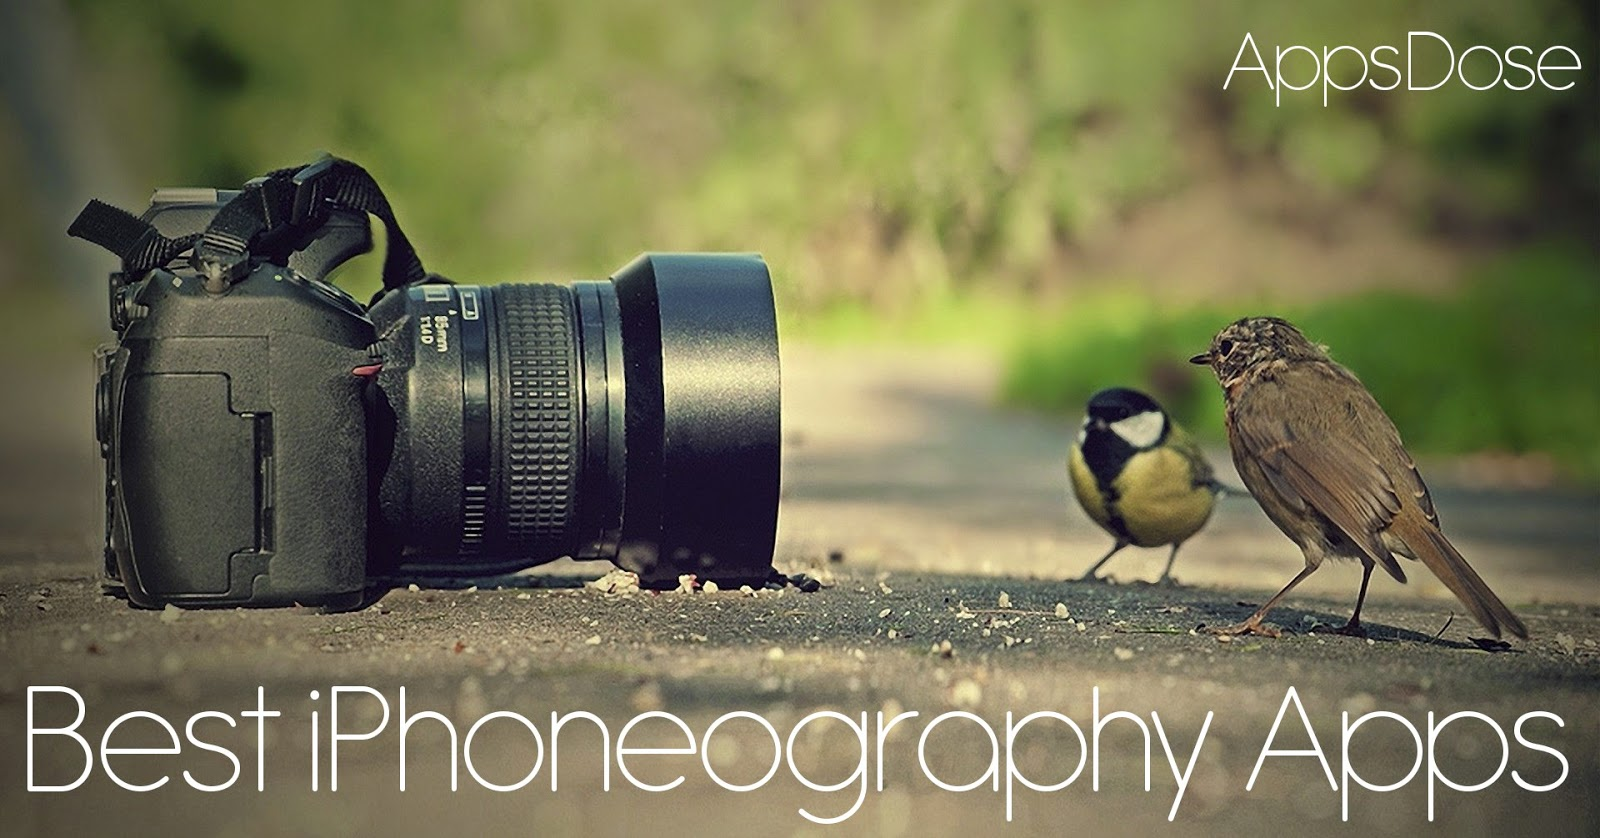 9 Best Photography Apps for iPhone